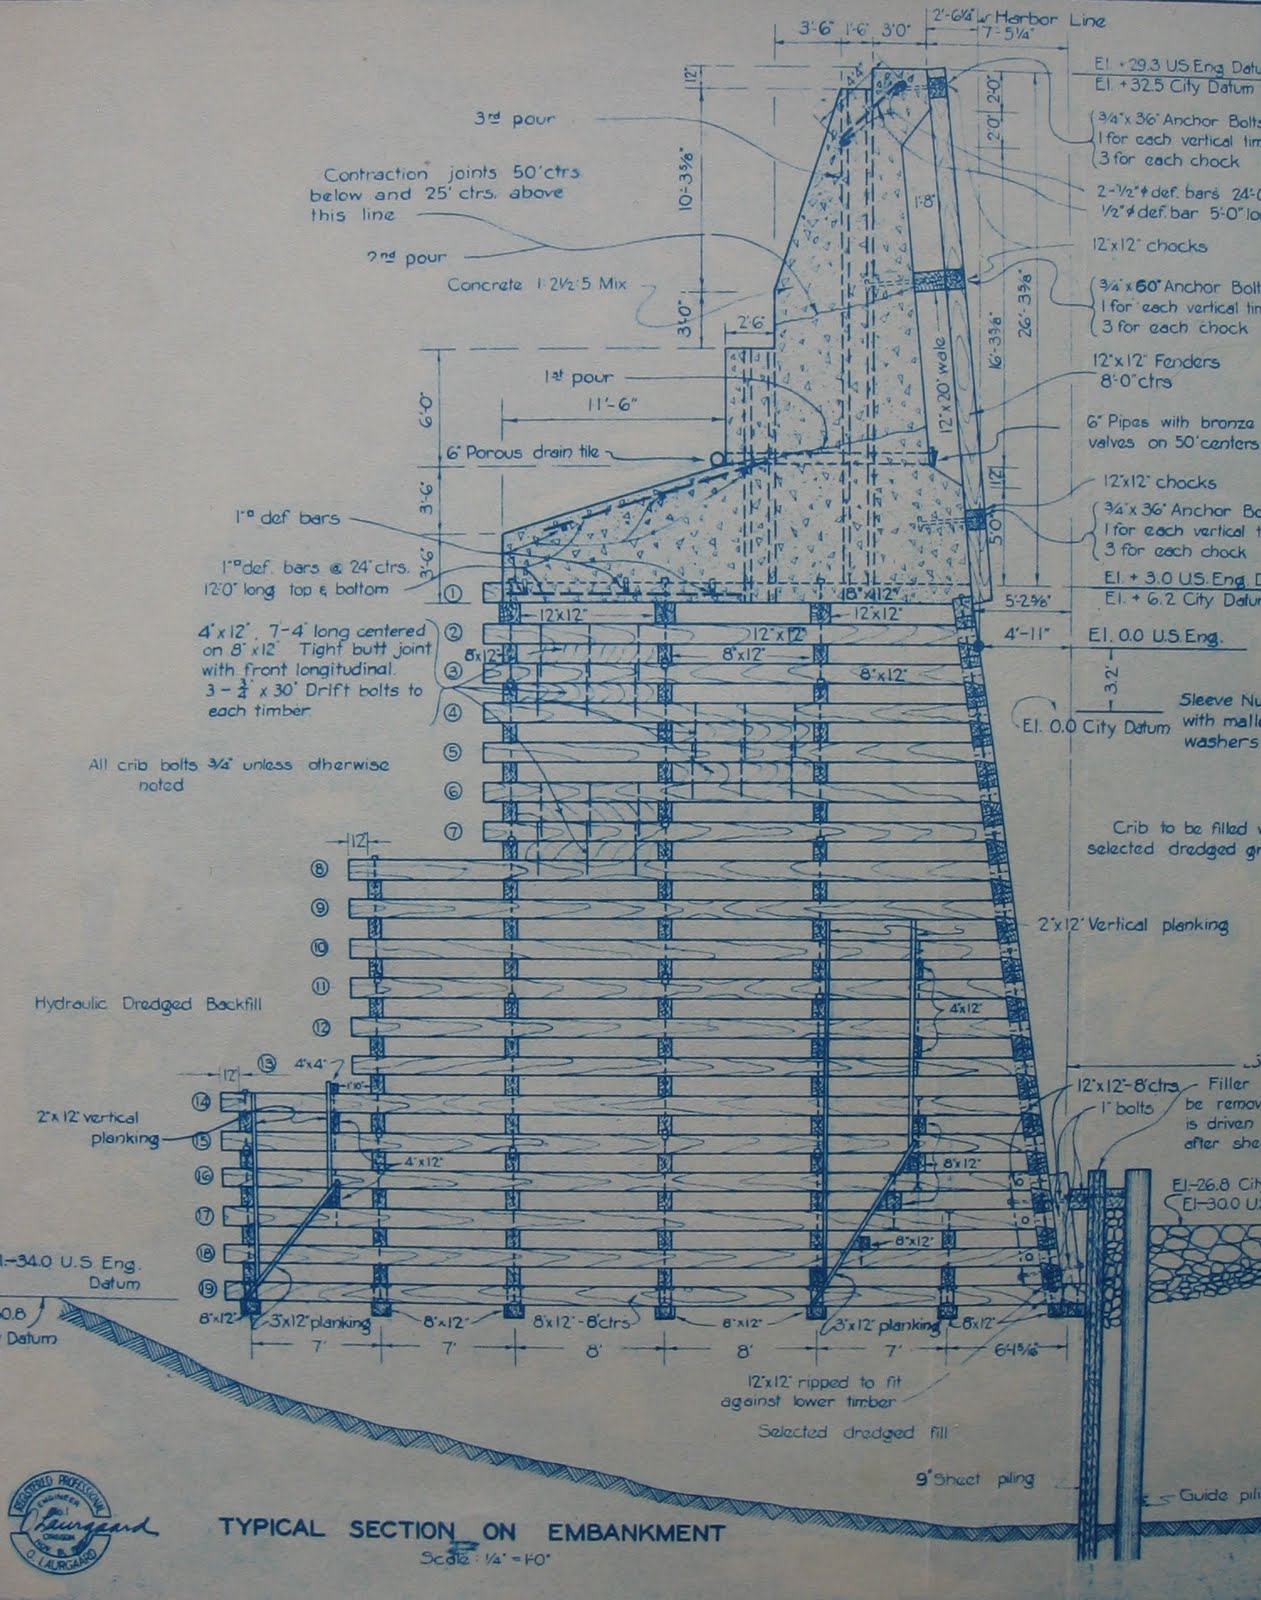 Wall Schematic Engineering Diagram Historical Threads Construction Of Portland Harbor 1927 1929 Willamette River Would Be To The Right Structure